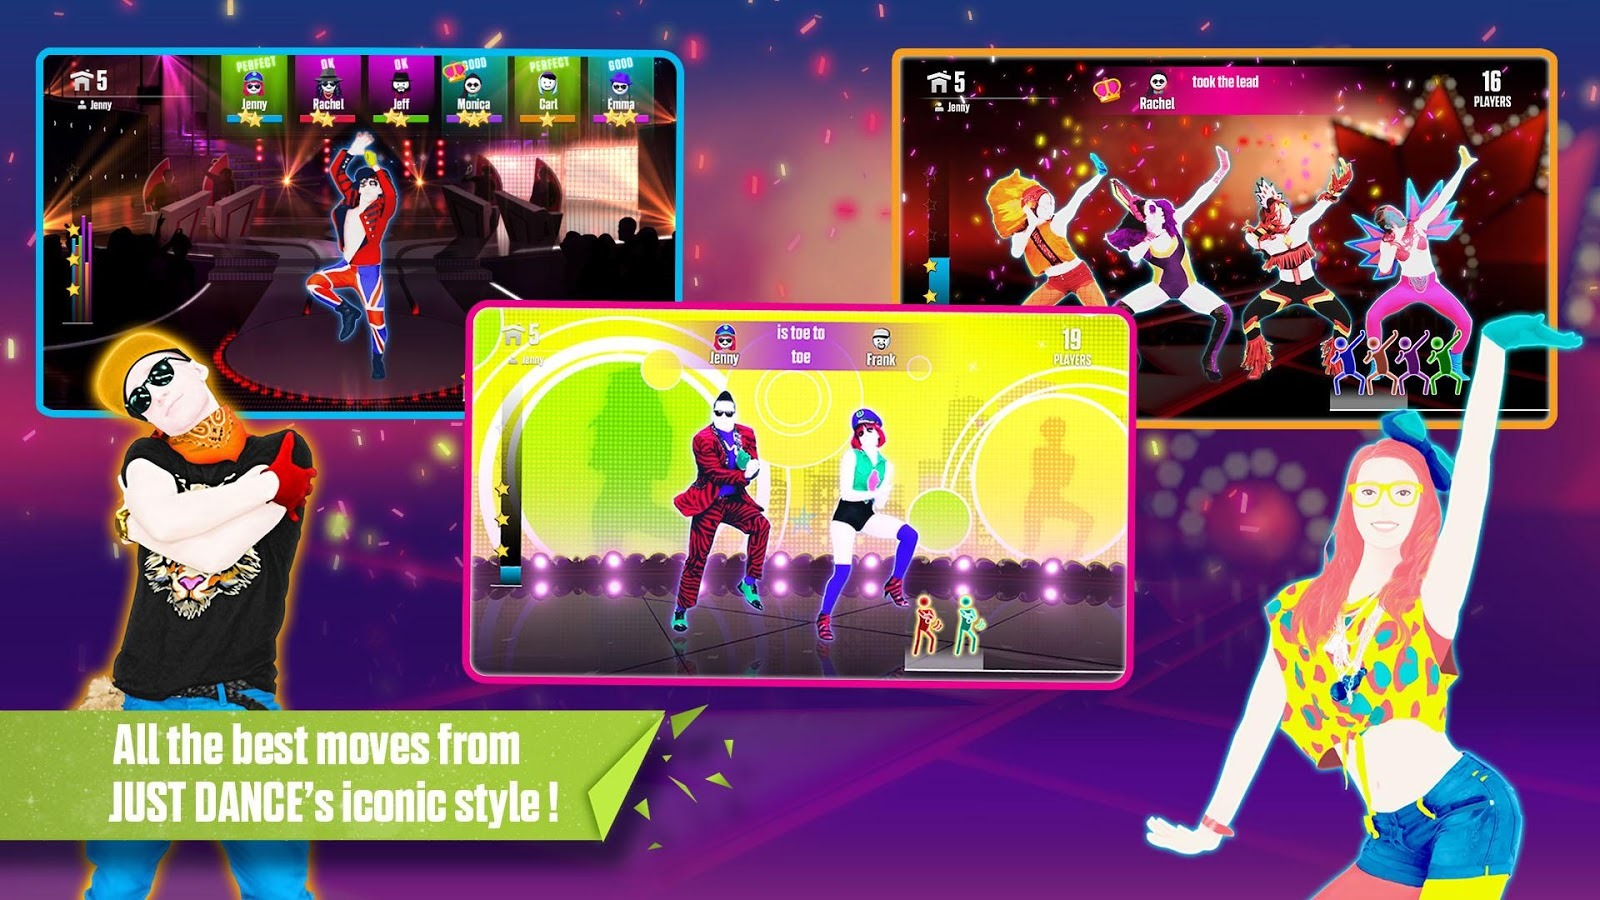 Ubisoft releases just dance now in the play store uses your phone as